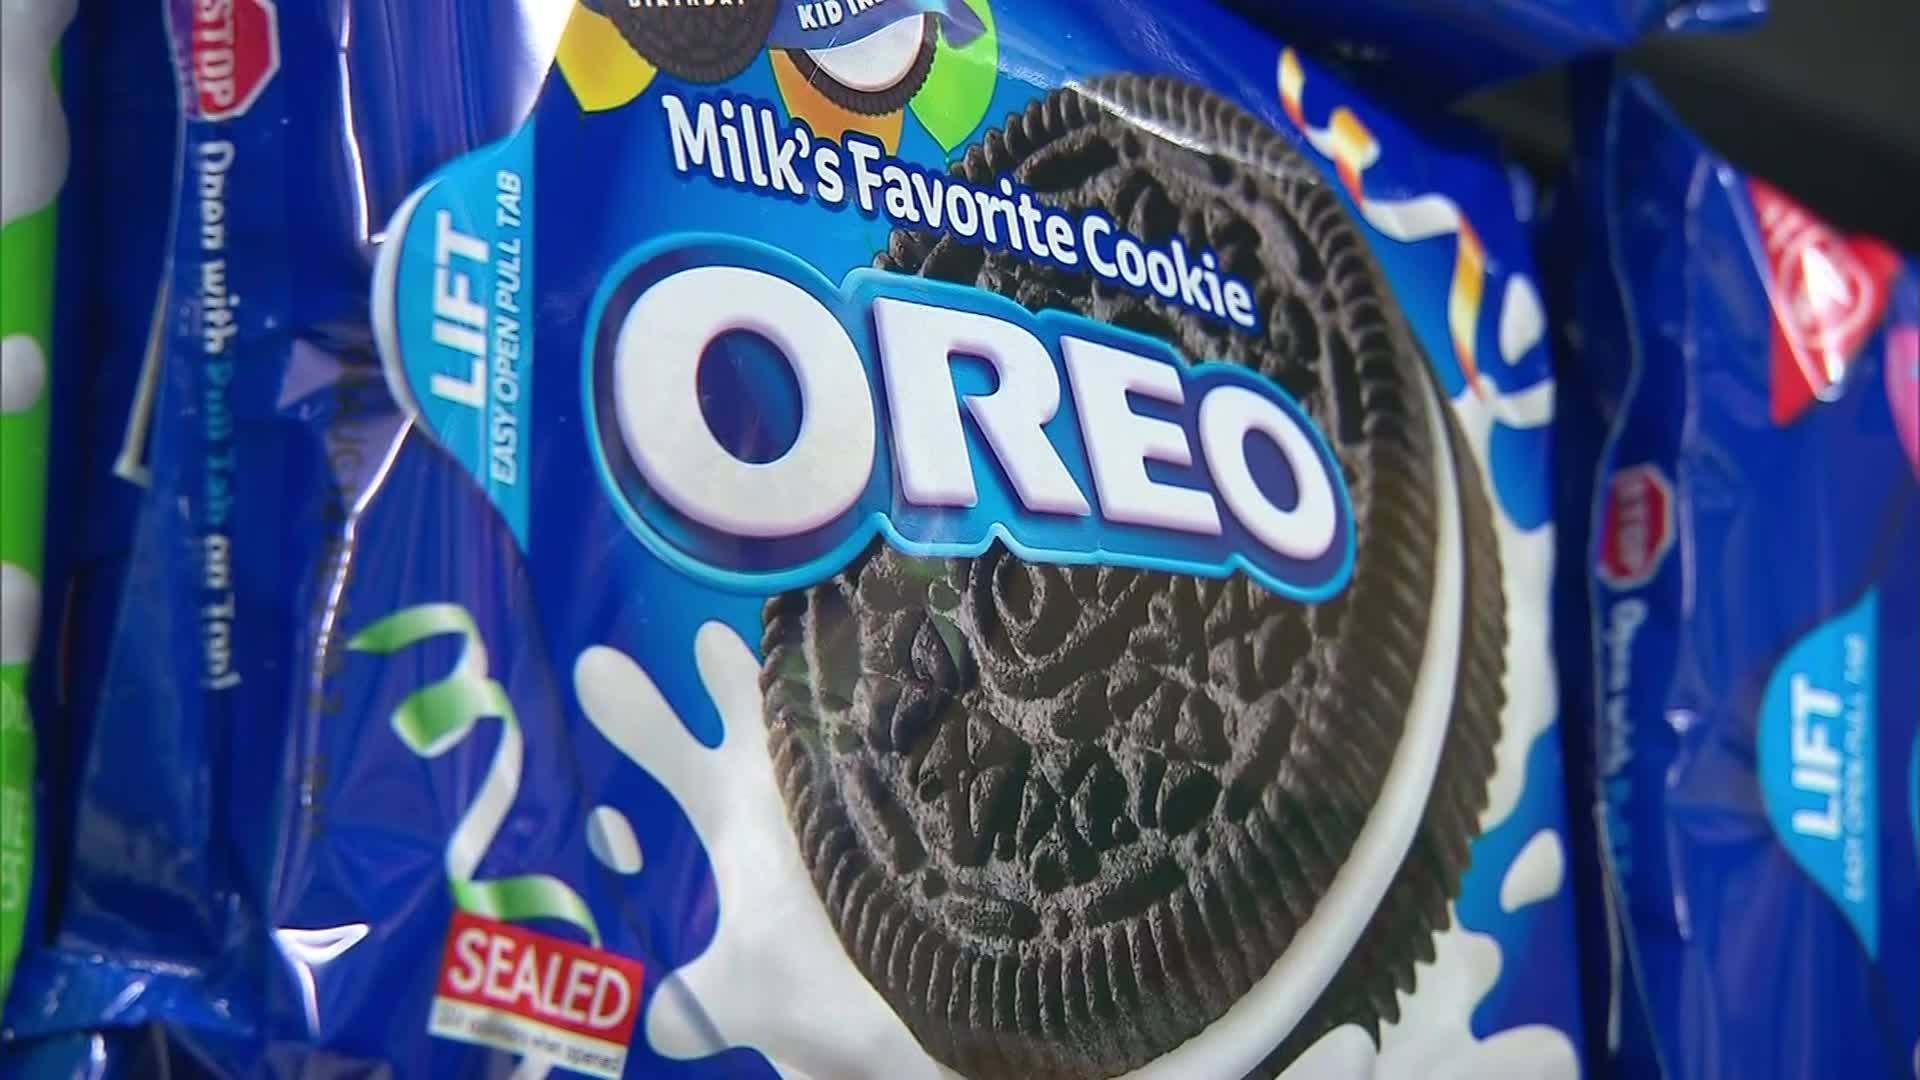 National_Oreo_Cookie_Day_2_20190306154726